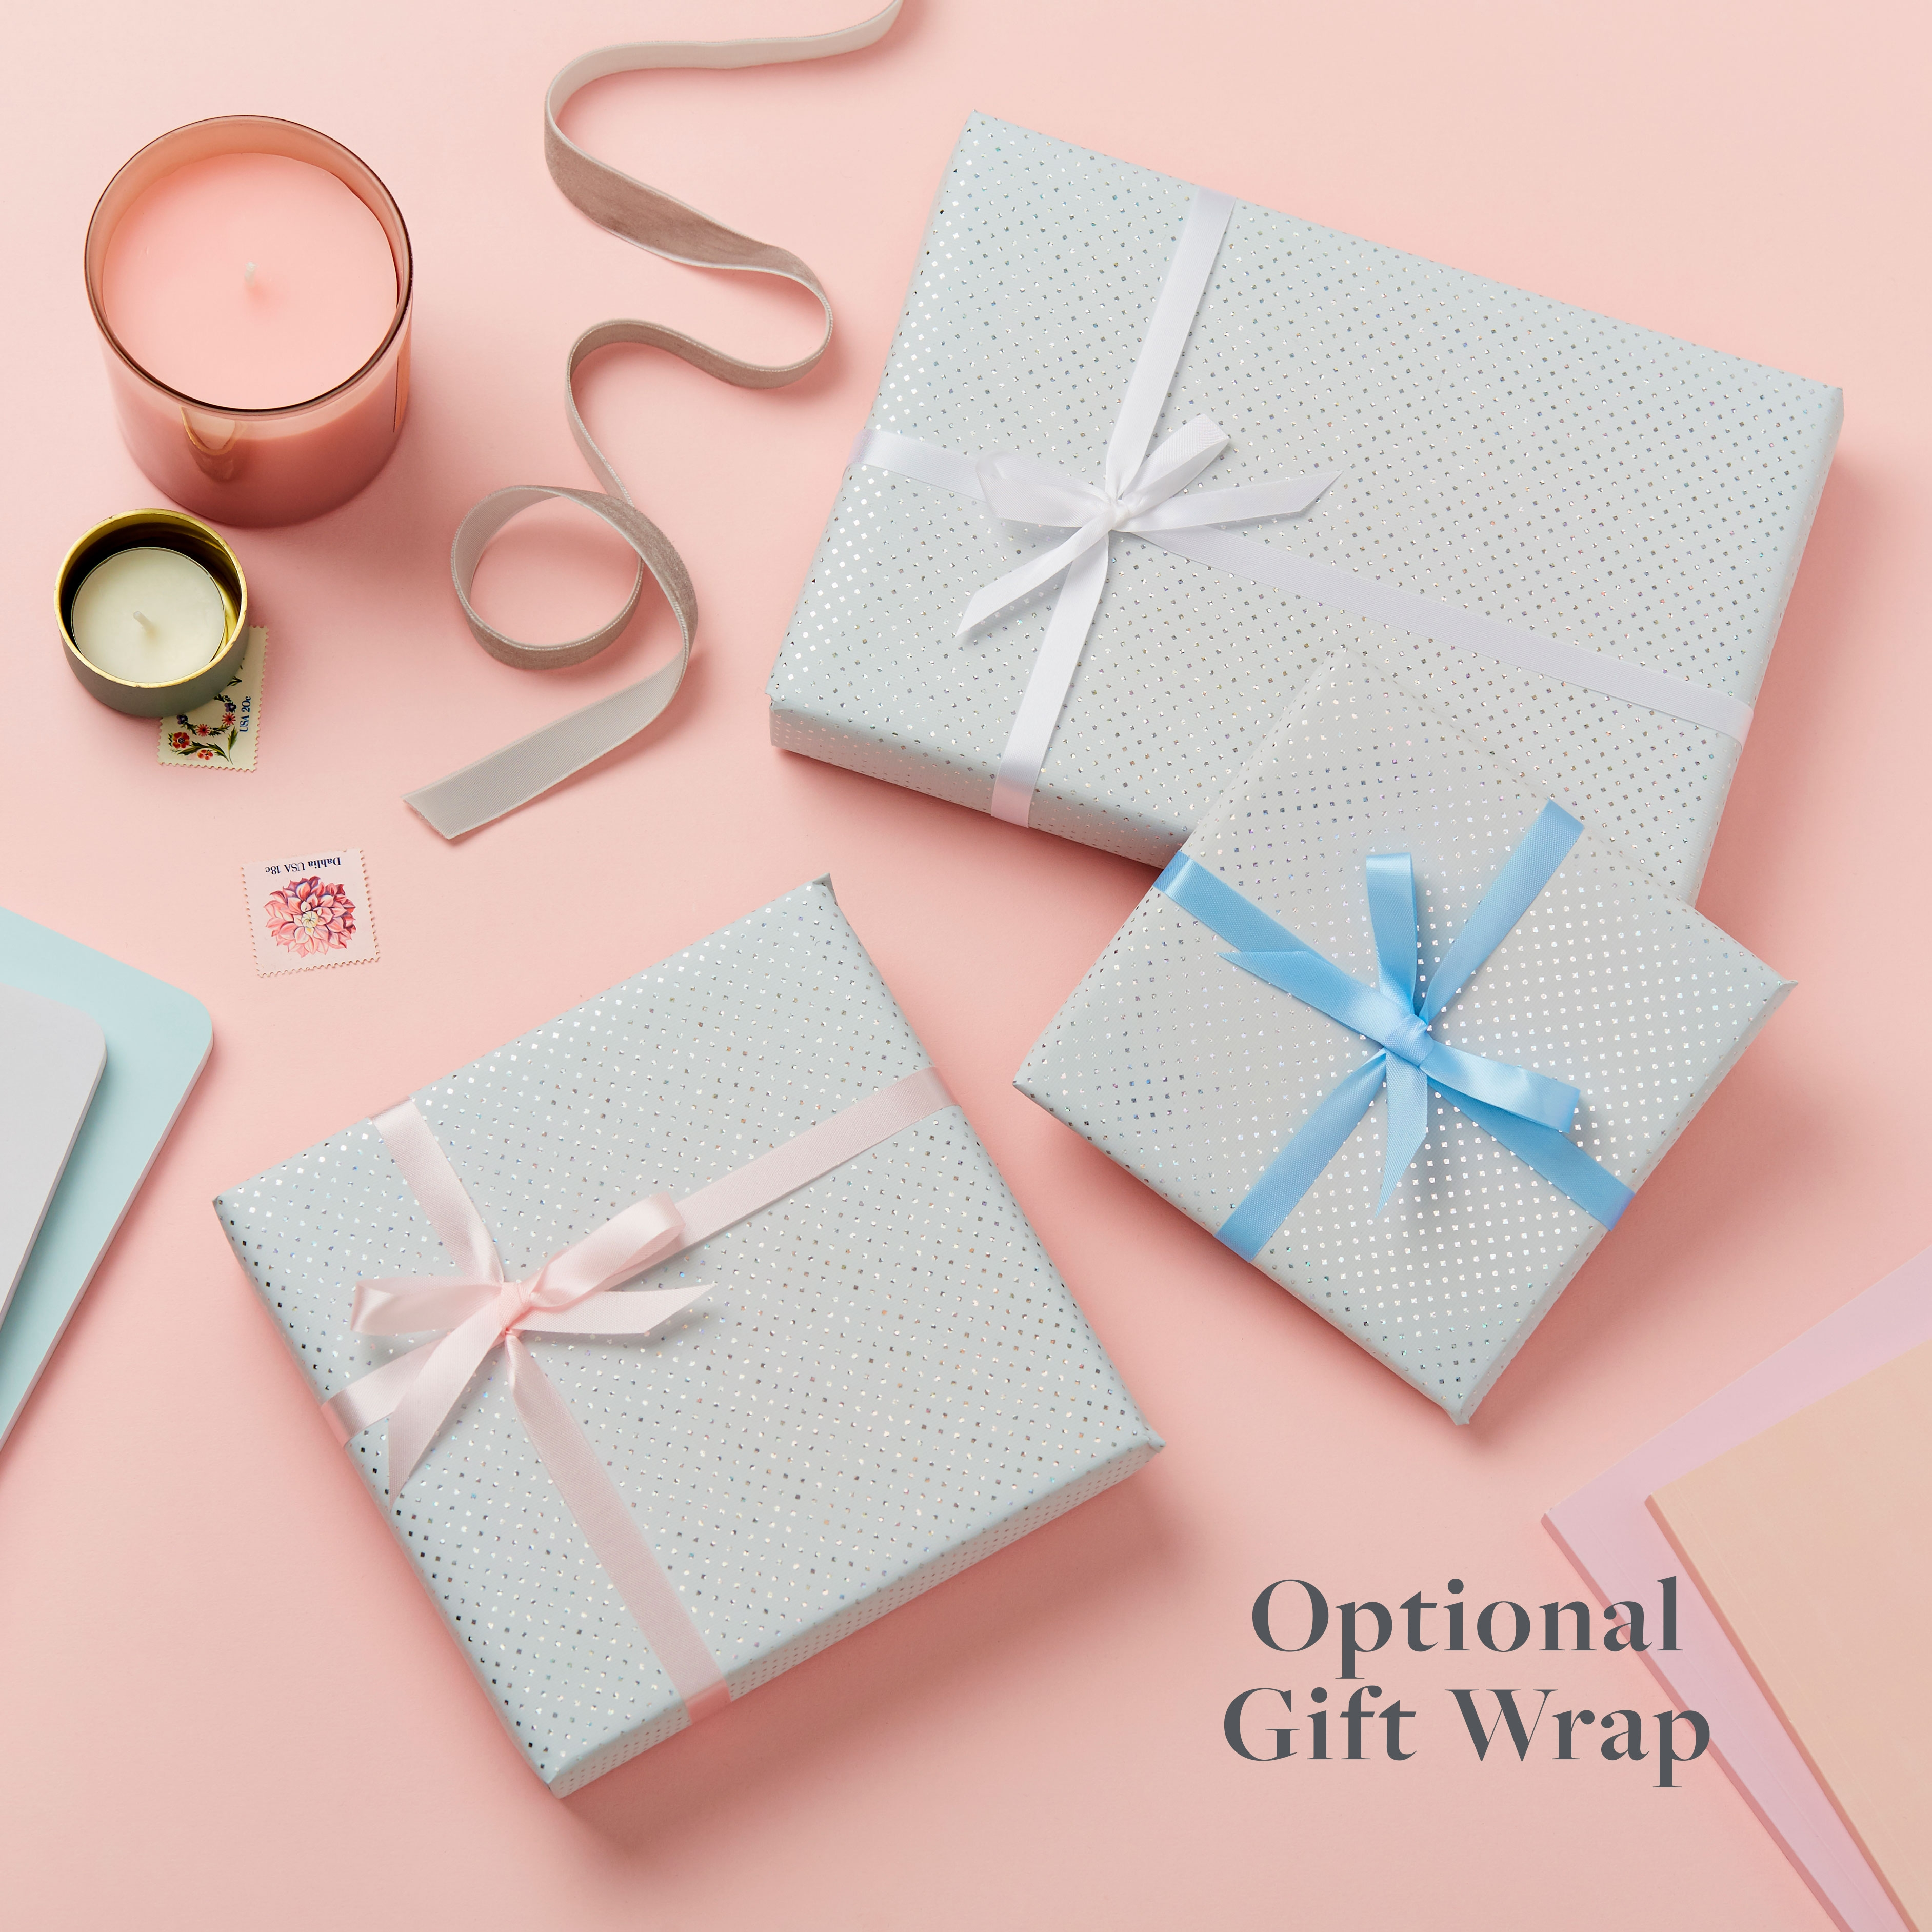 Optional gift wrap